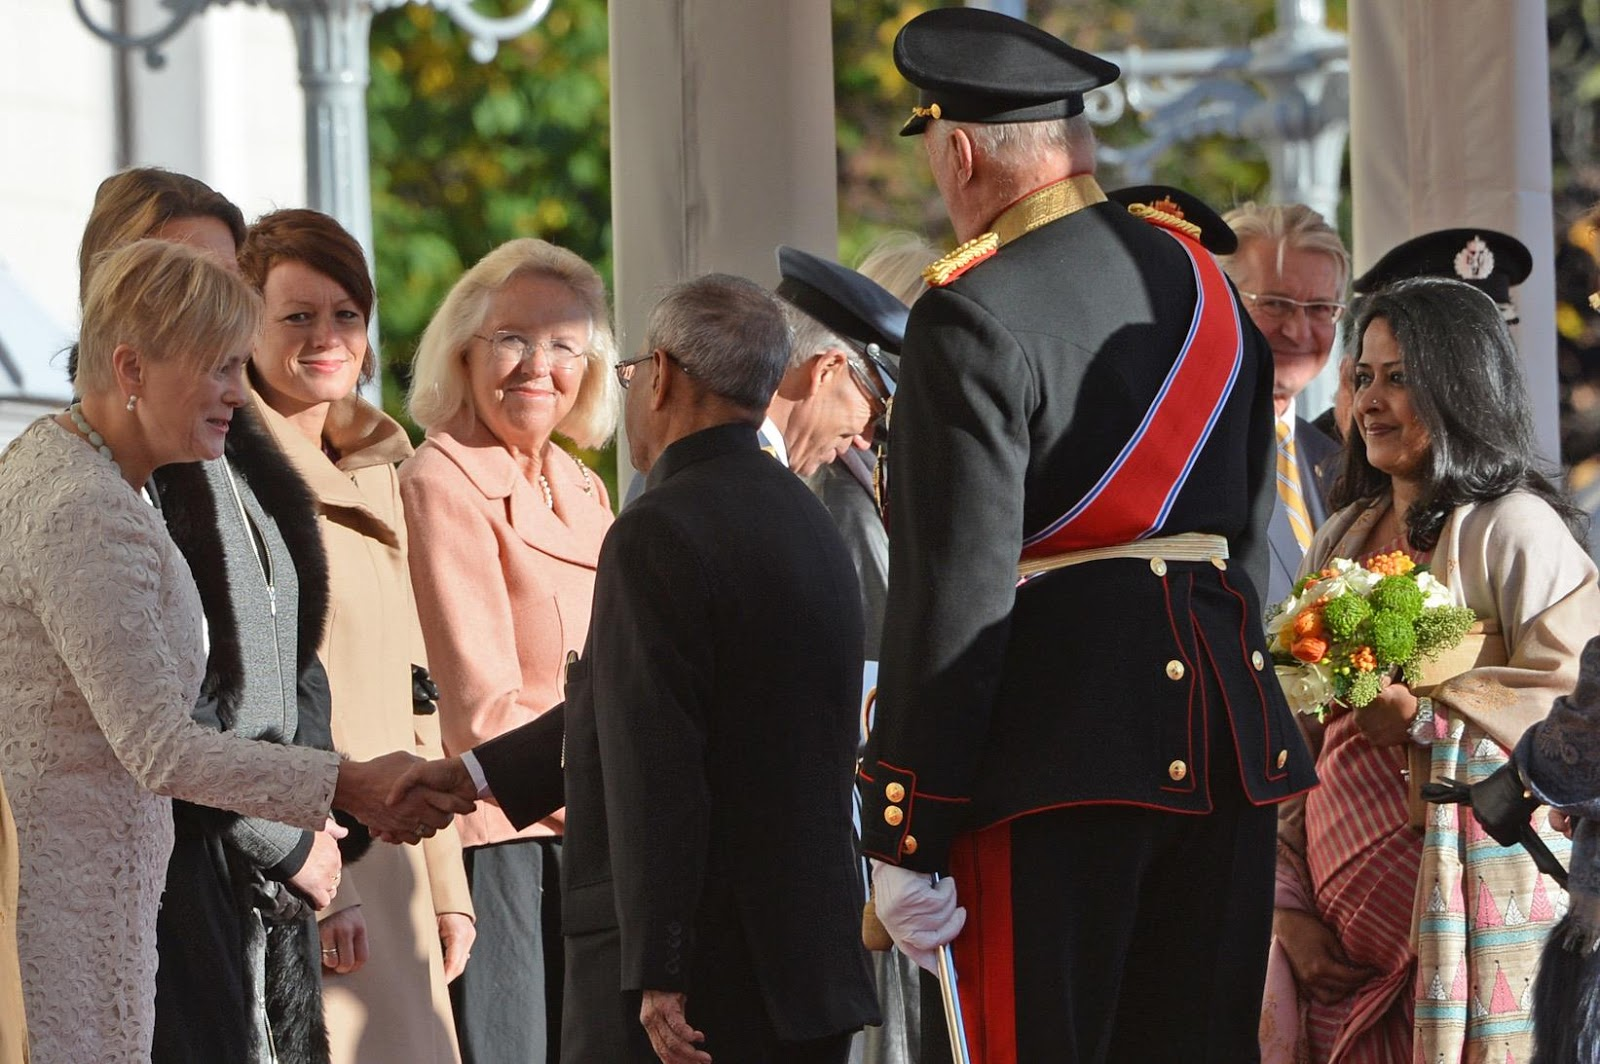 Norwegian Royal Family welcome the President of India, Pranab Mukherjee and his daughter, Sharmistha Mukherjee to Norway on the first day of their state visit to the country.